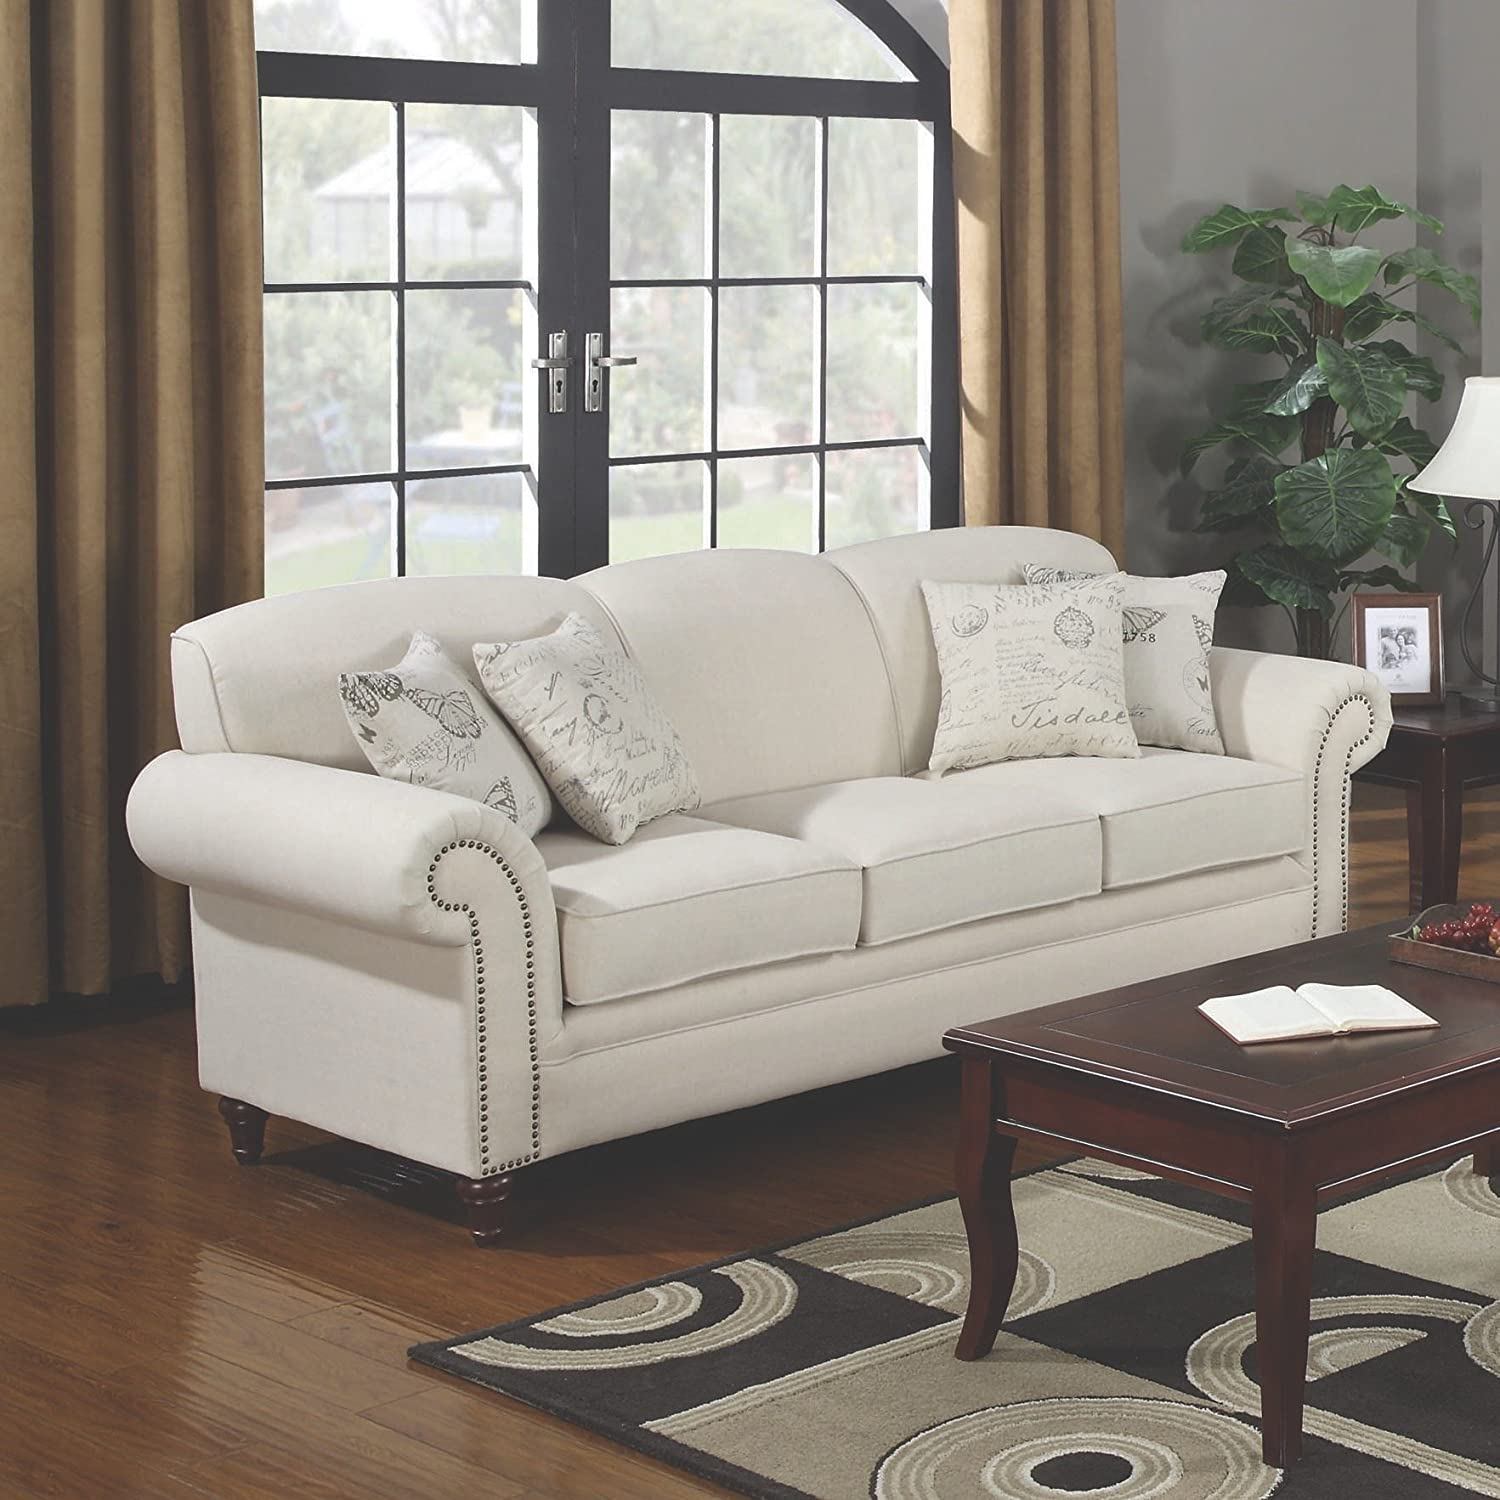 Captivating Amazon.com: Coaster Home Furnishings 501154 Traditional Sofa, Cream:  Kitchen U0026 Dining